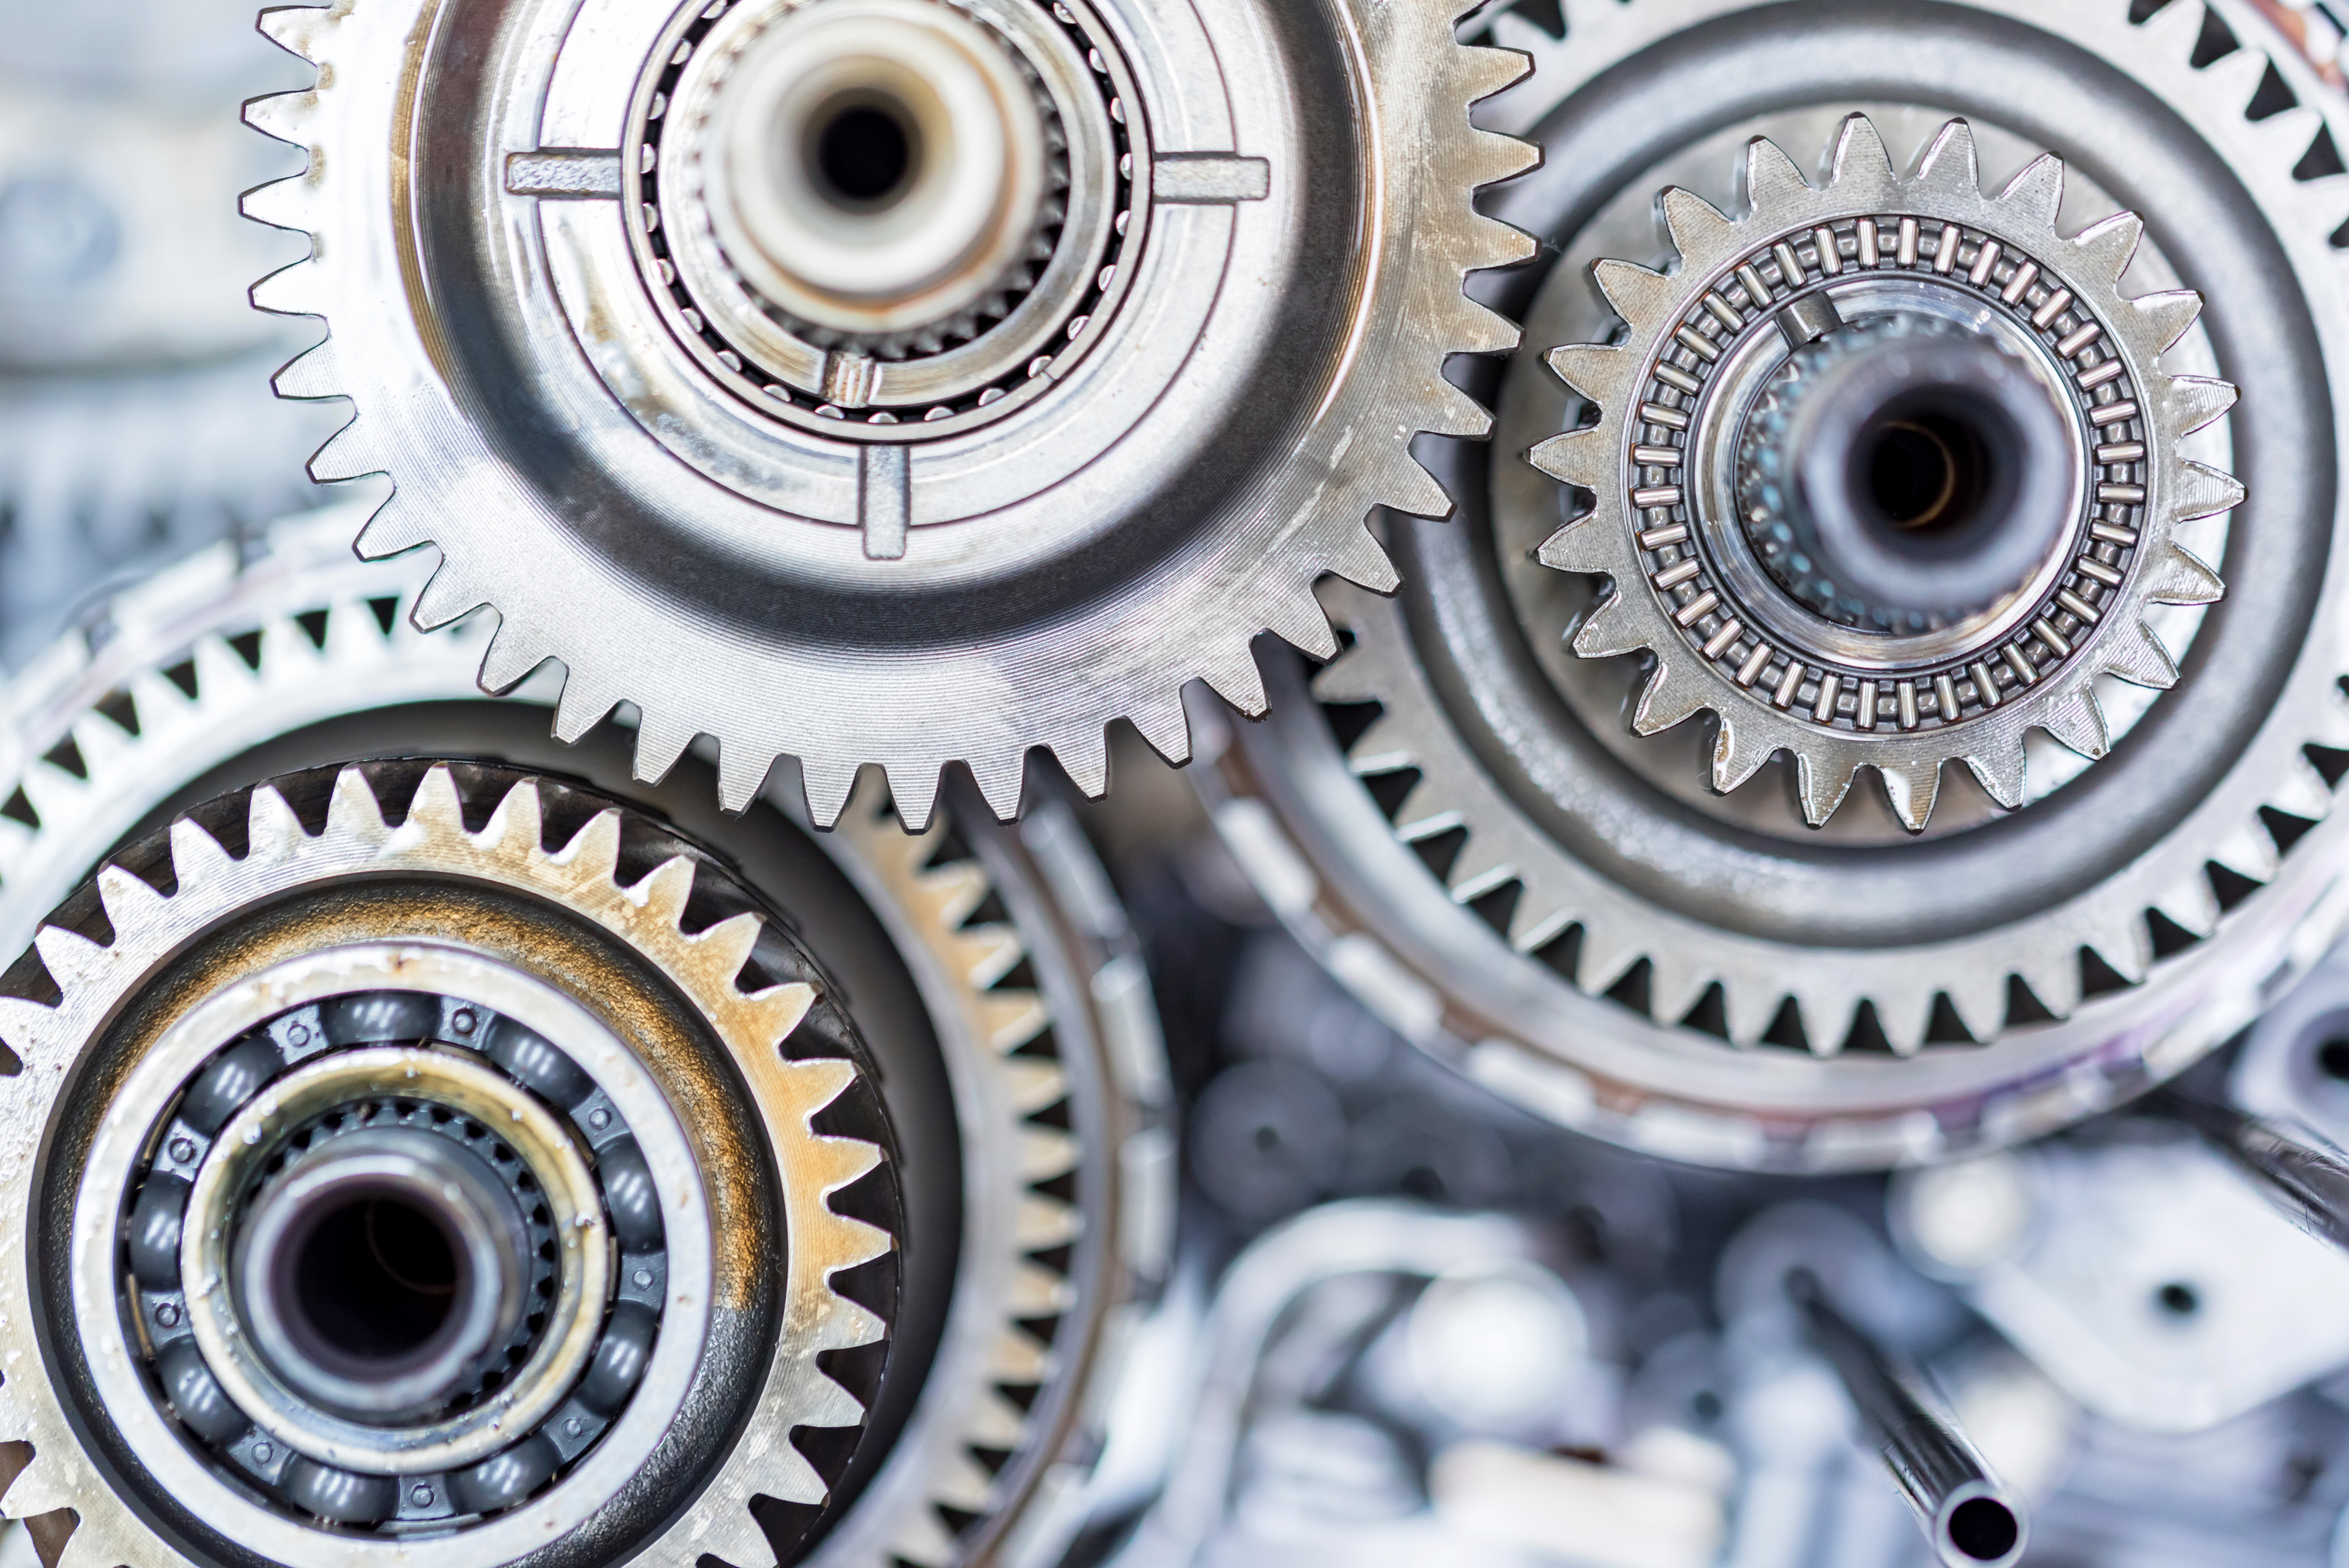 security-risk-physical-security-close-up-helical-gears-in-car-automatic-transmissi-